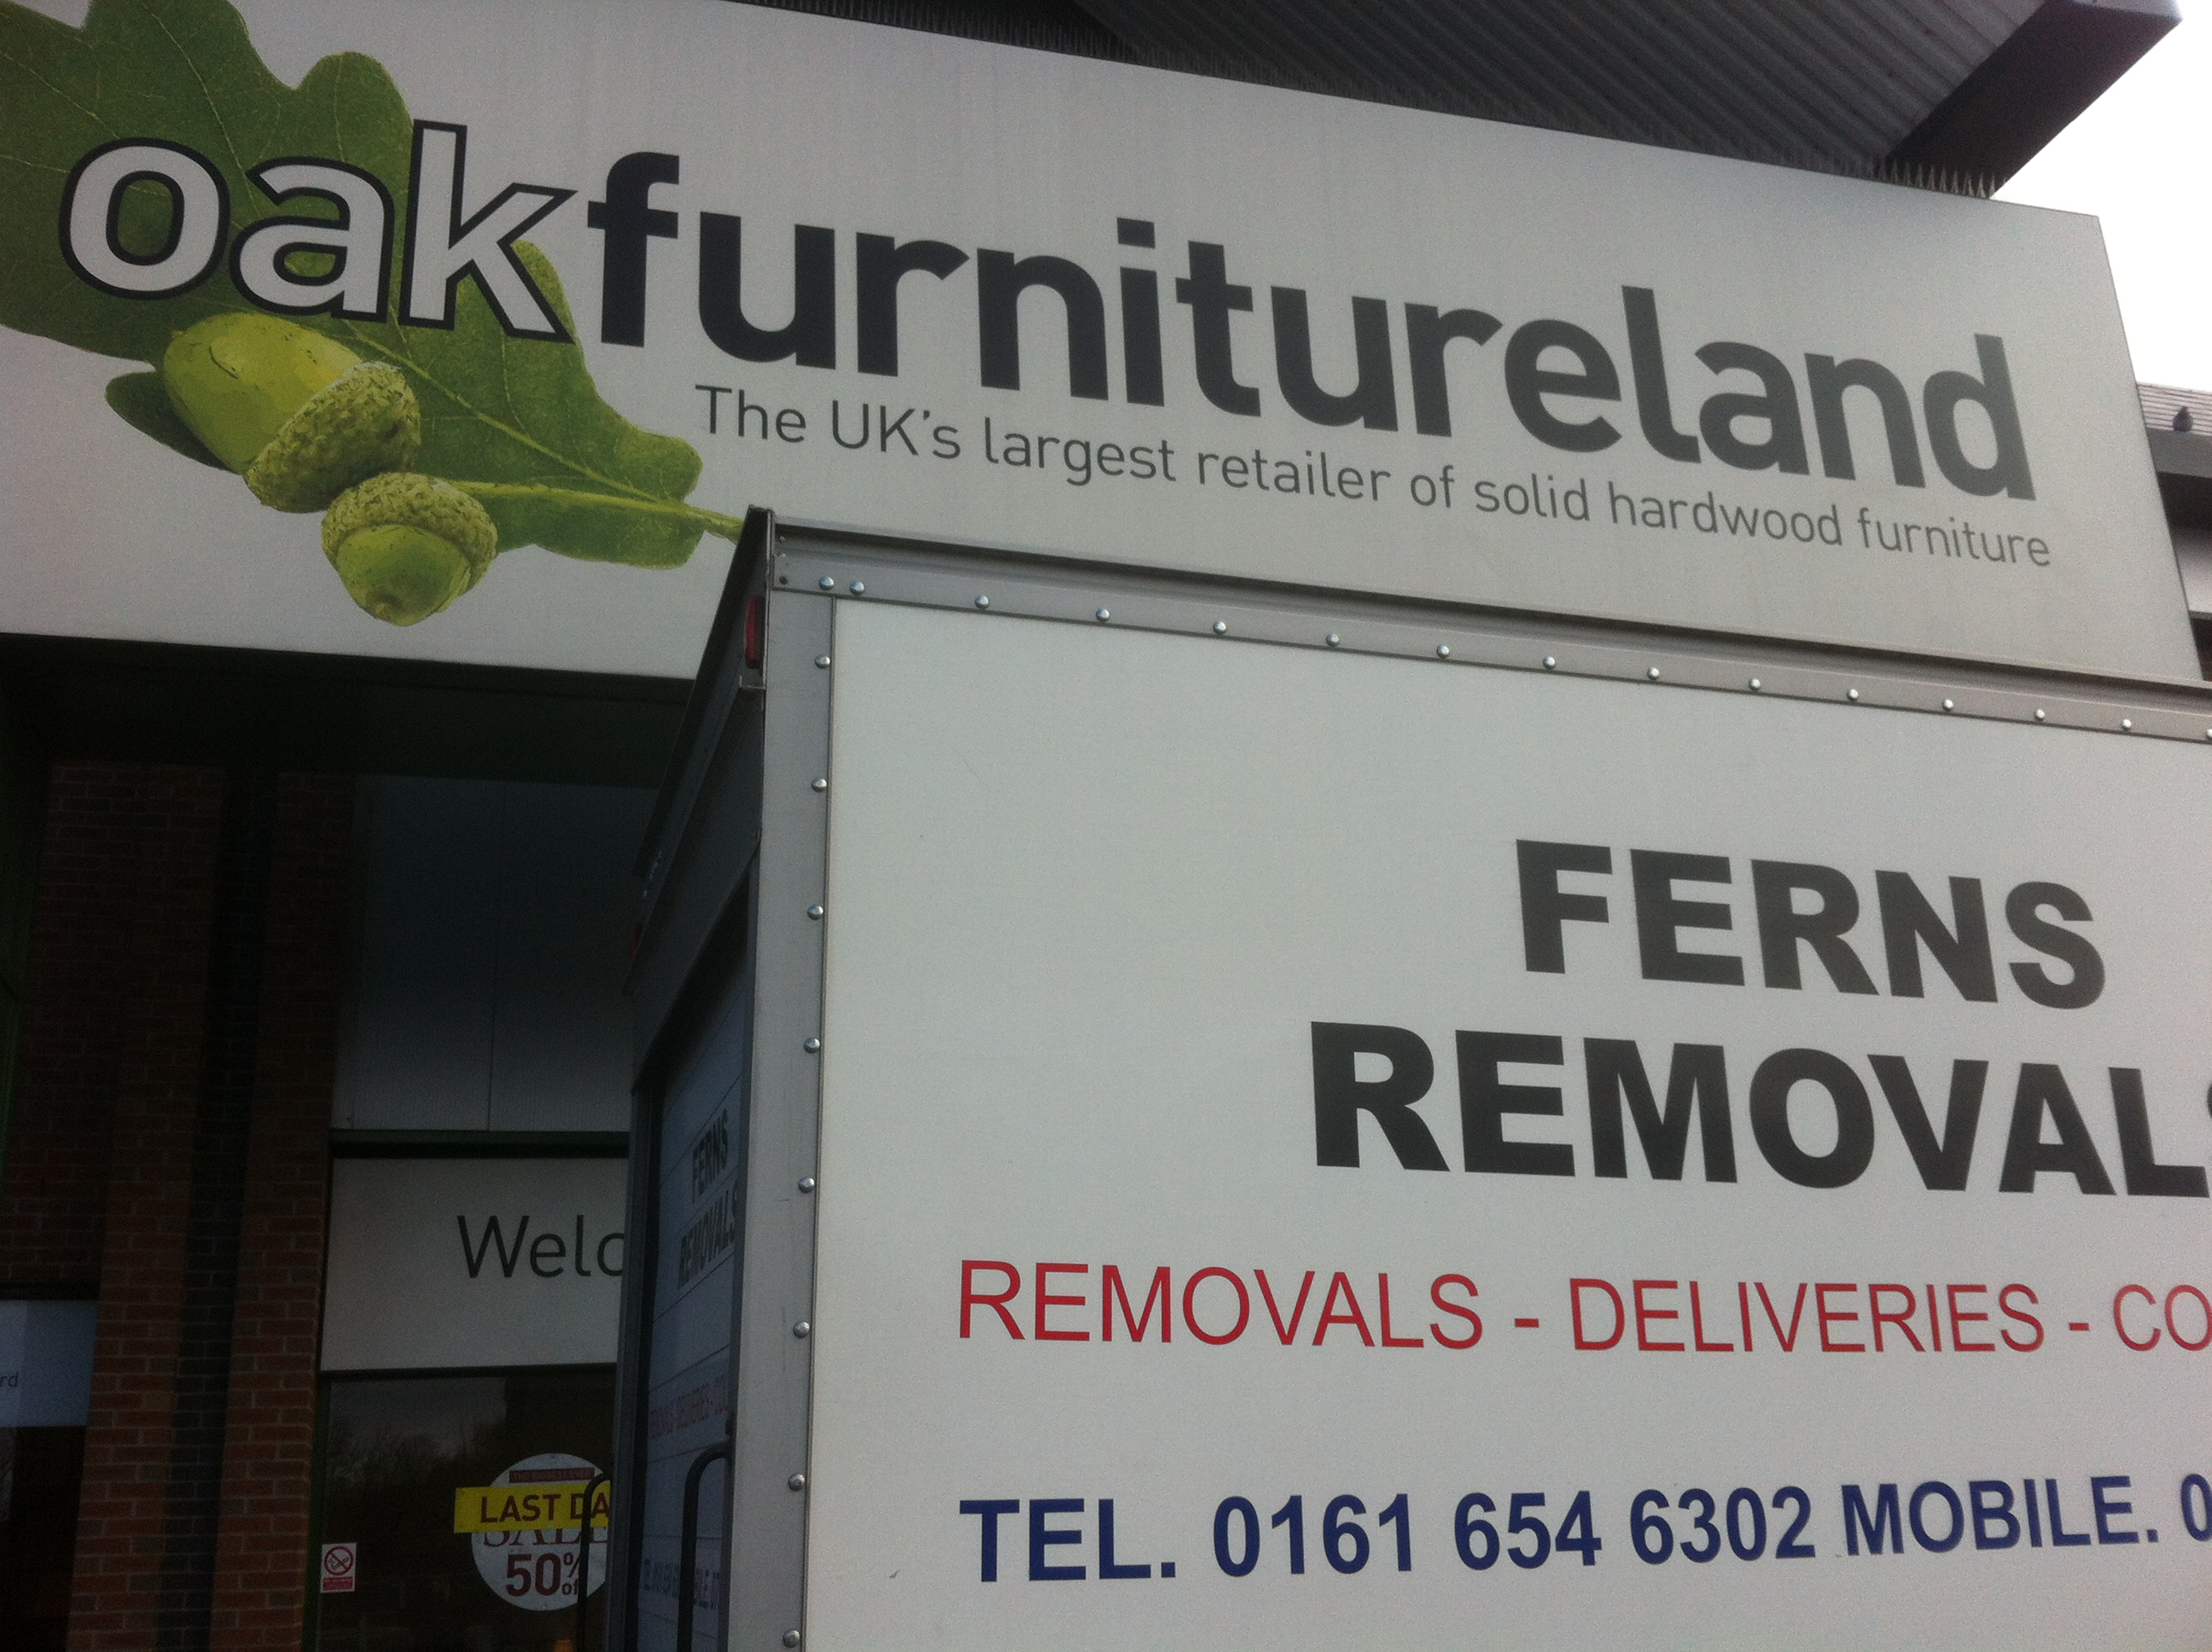 http://fernsremovals.co.uk/removals-middleton-manchester/